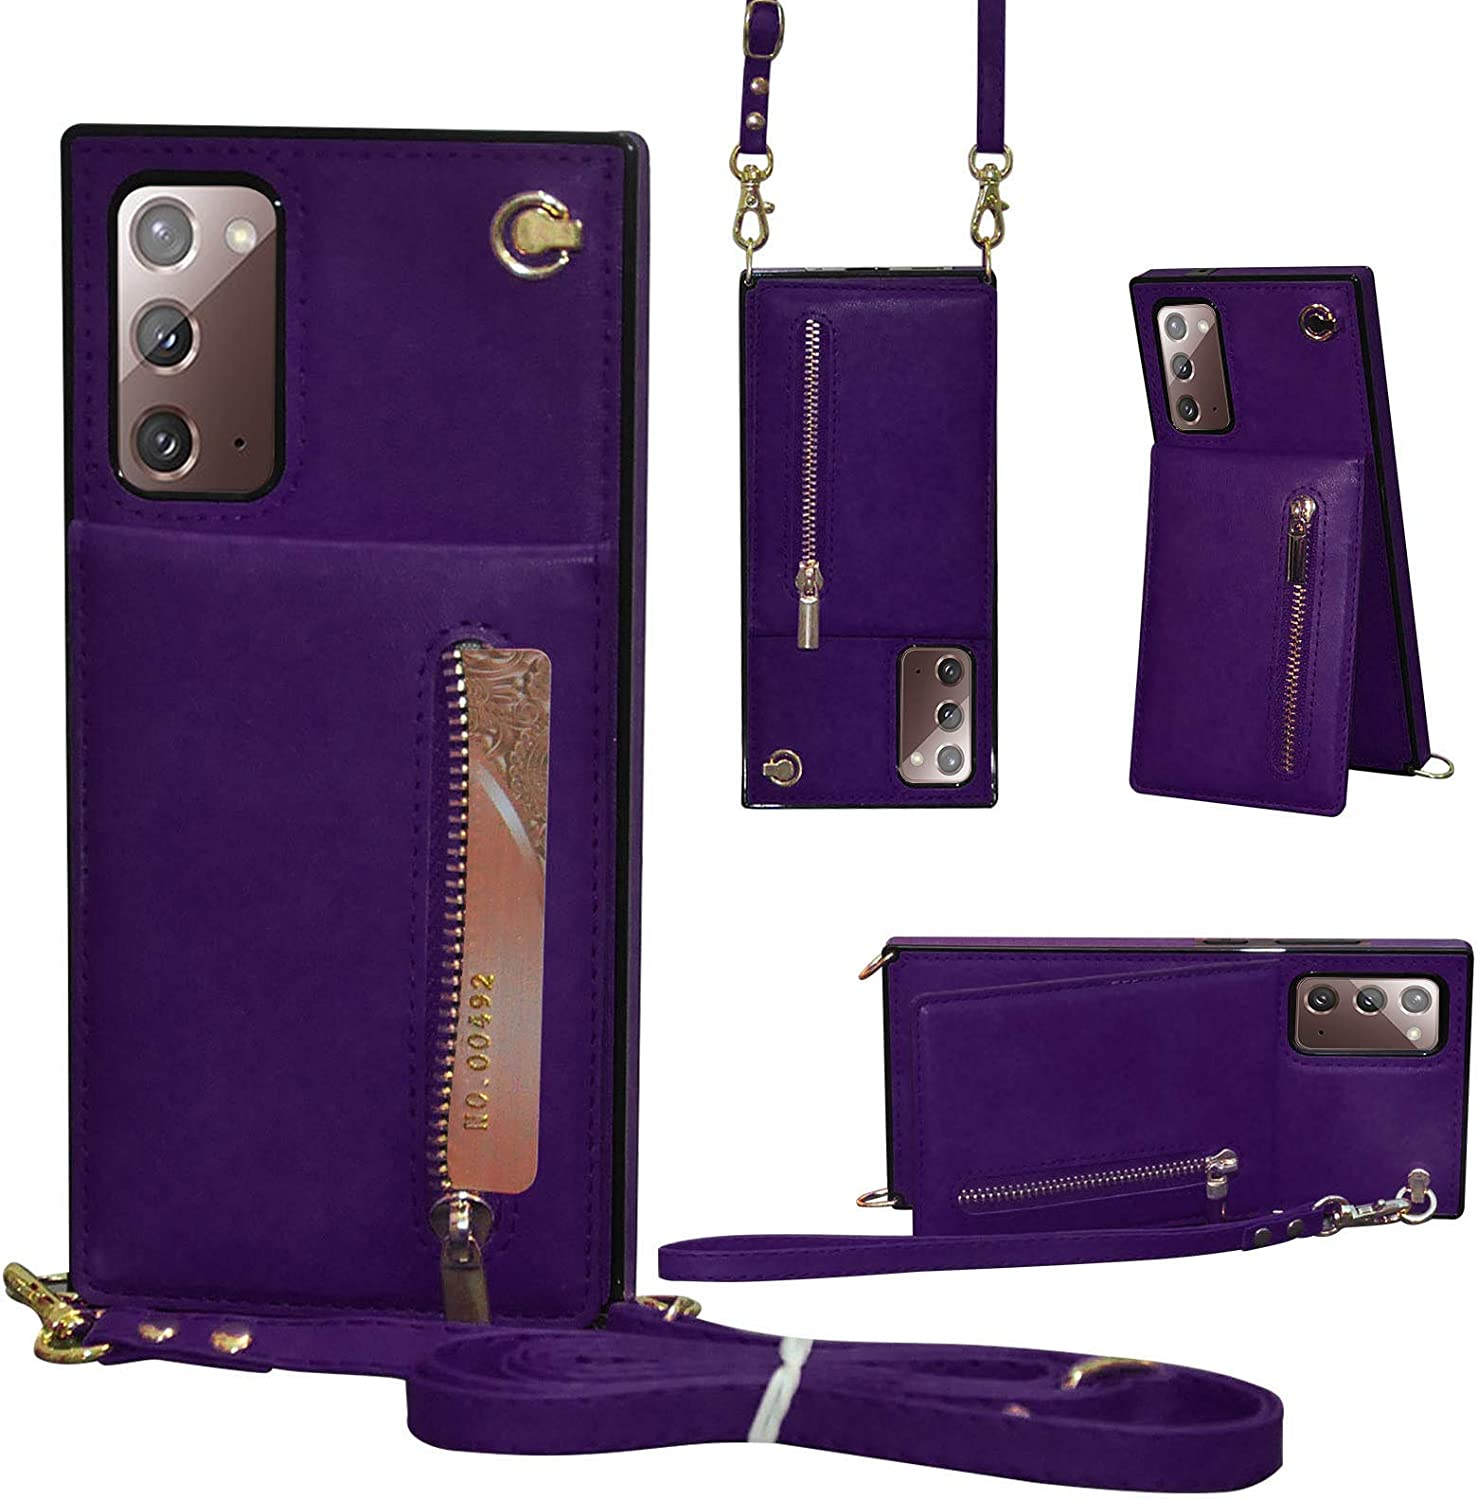 Challenge the lowest price Acxlife Samsung Galaxy S20 FE Adjusta Wallet Max 45% OFF Case 5G with